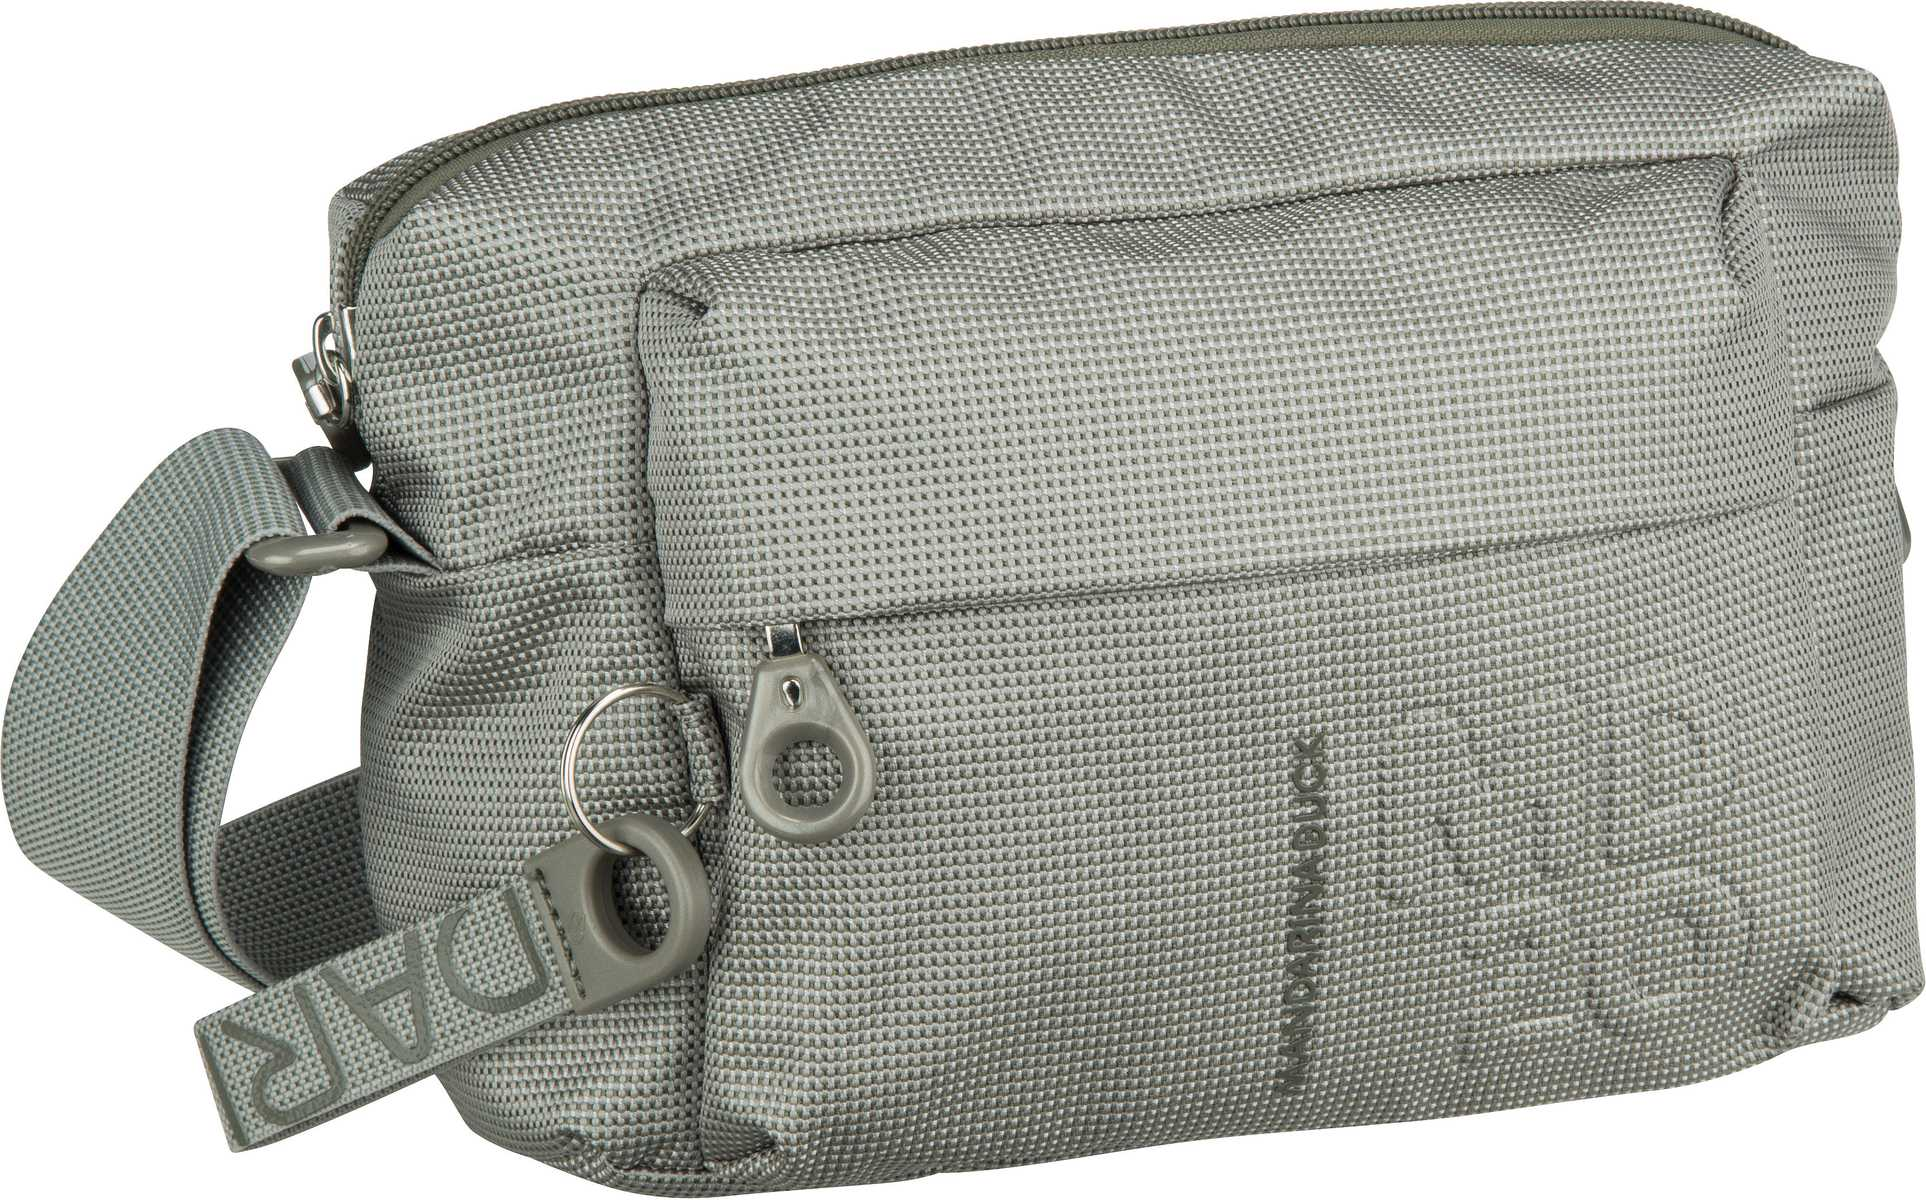 Umhängetasche MD20 Small Crossover Bag QMTT7 Soldier